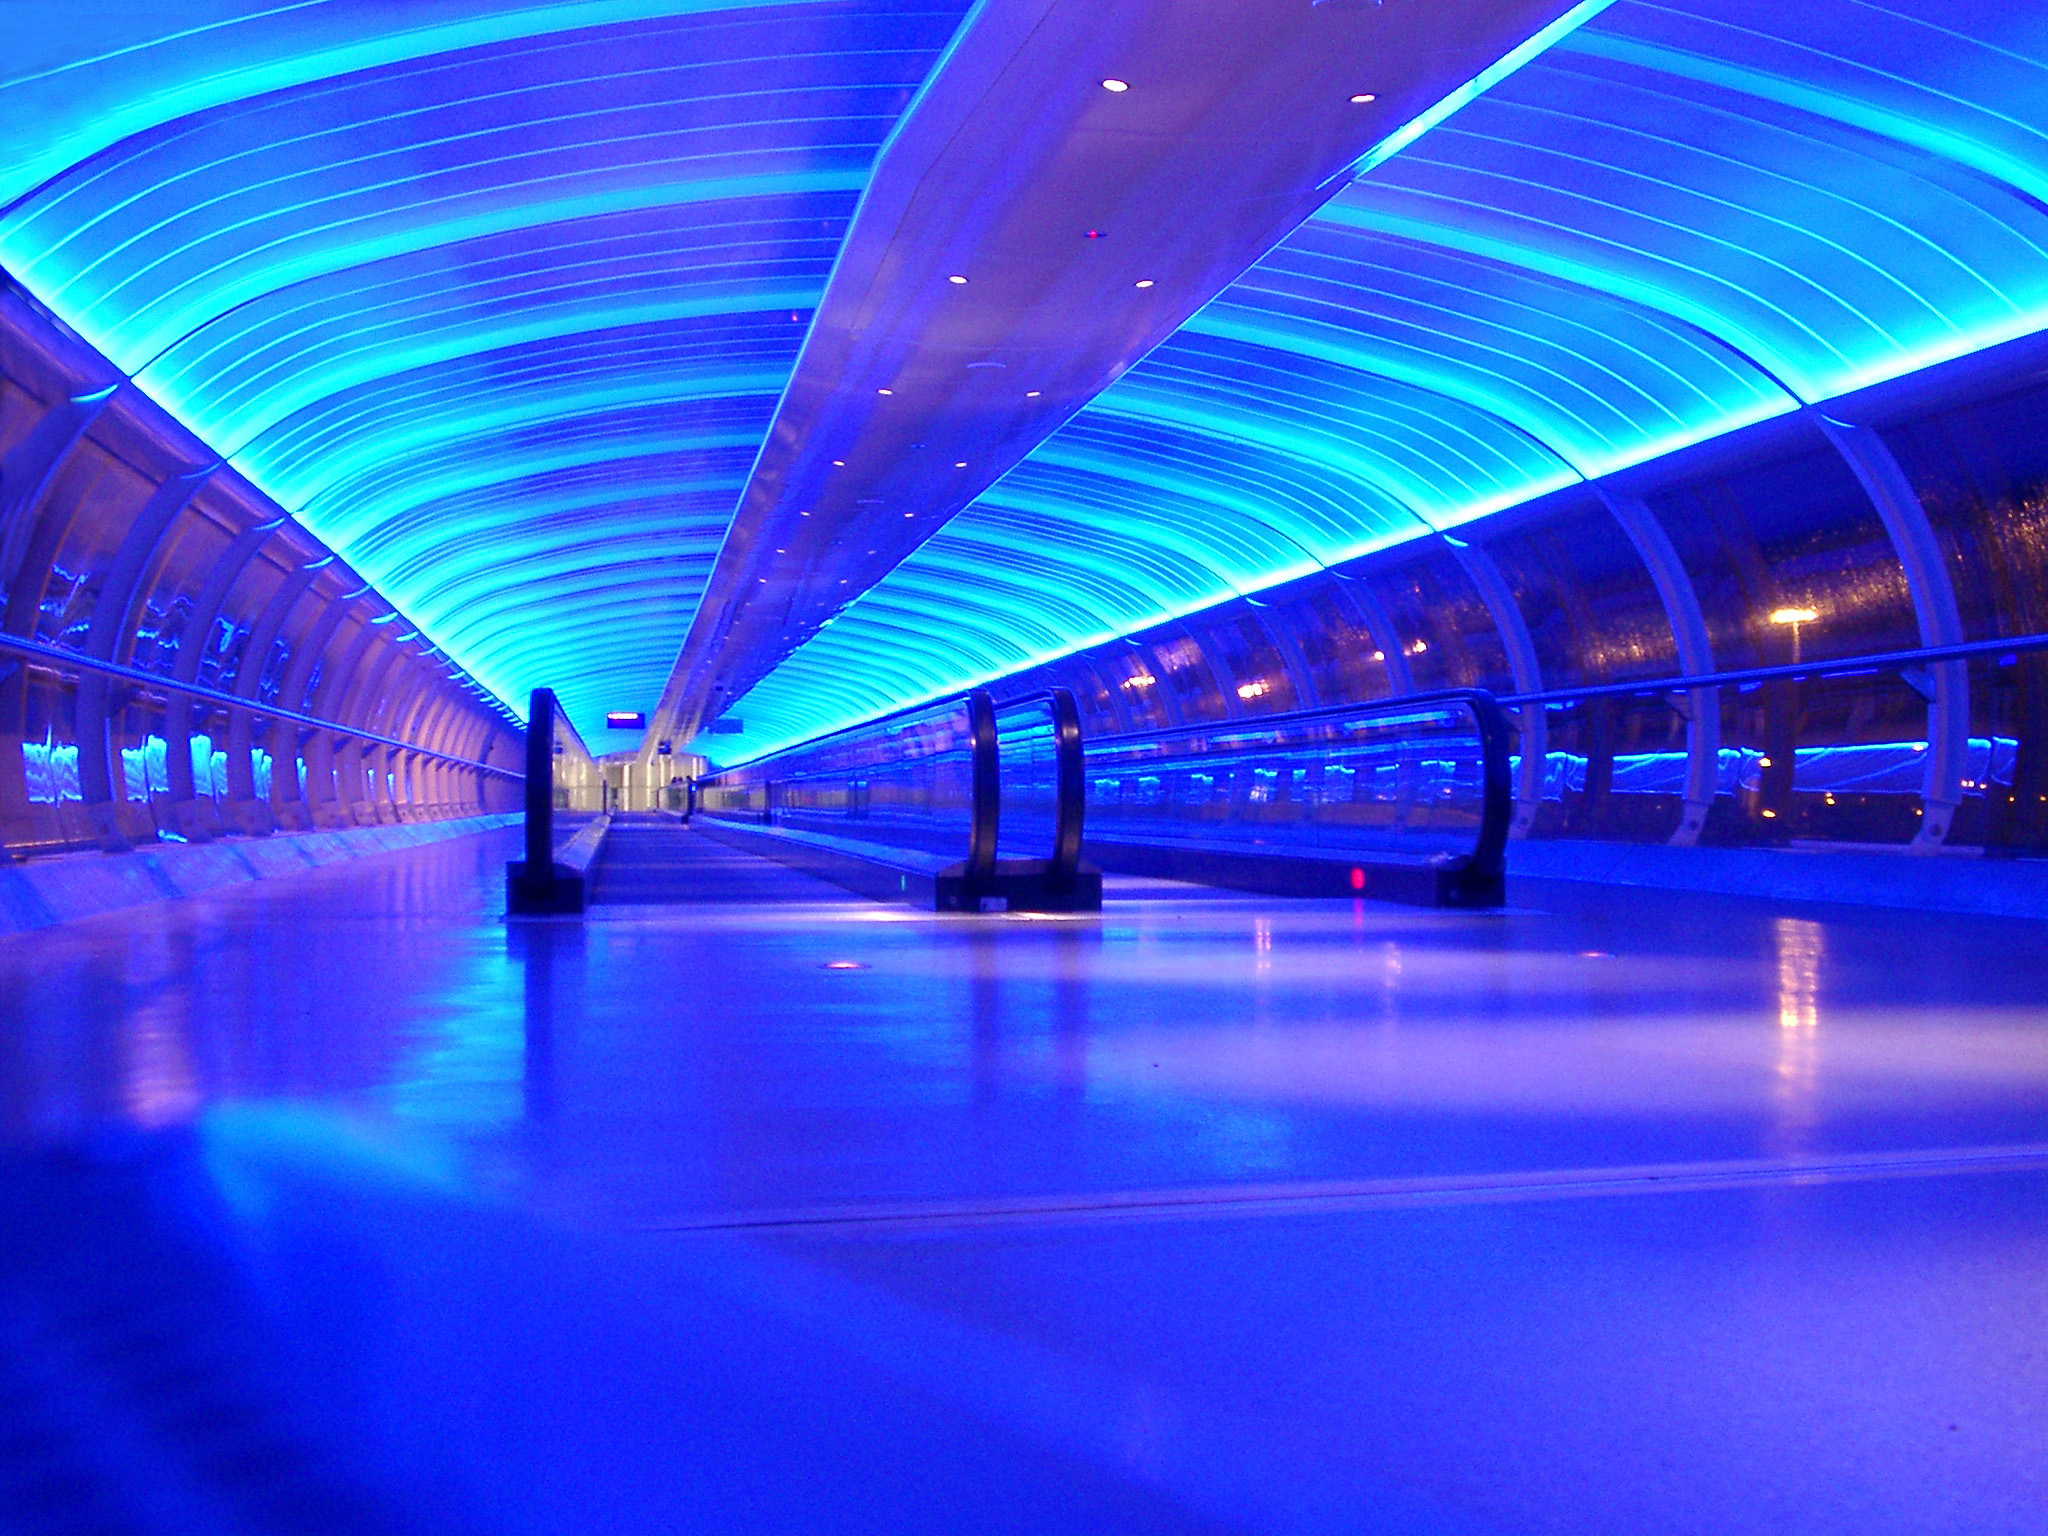 Interior of a blue airport sky bridge with travelators for pedestrians and overhead lighting in an arched ceiling